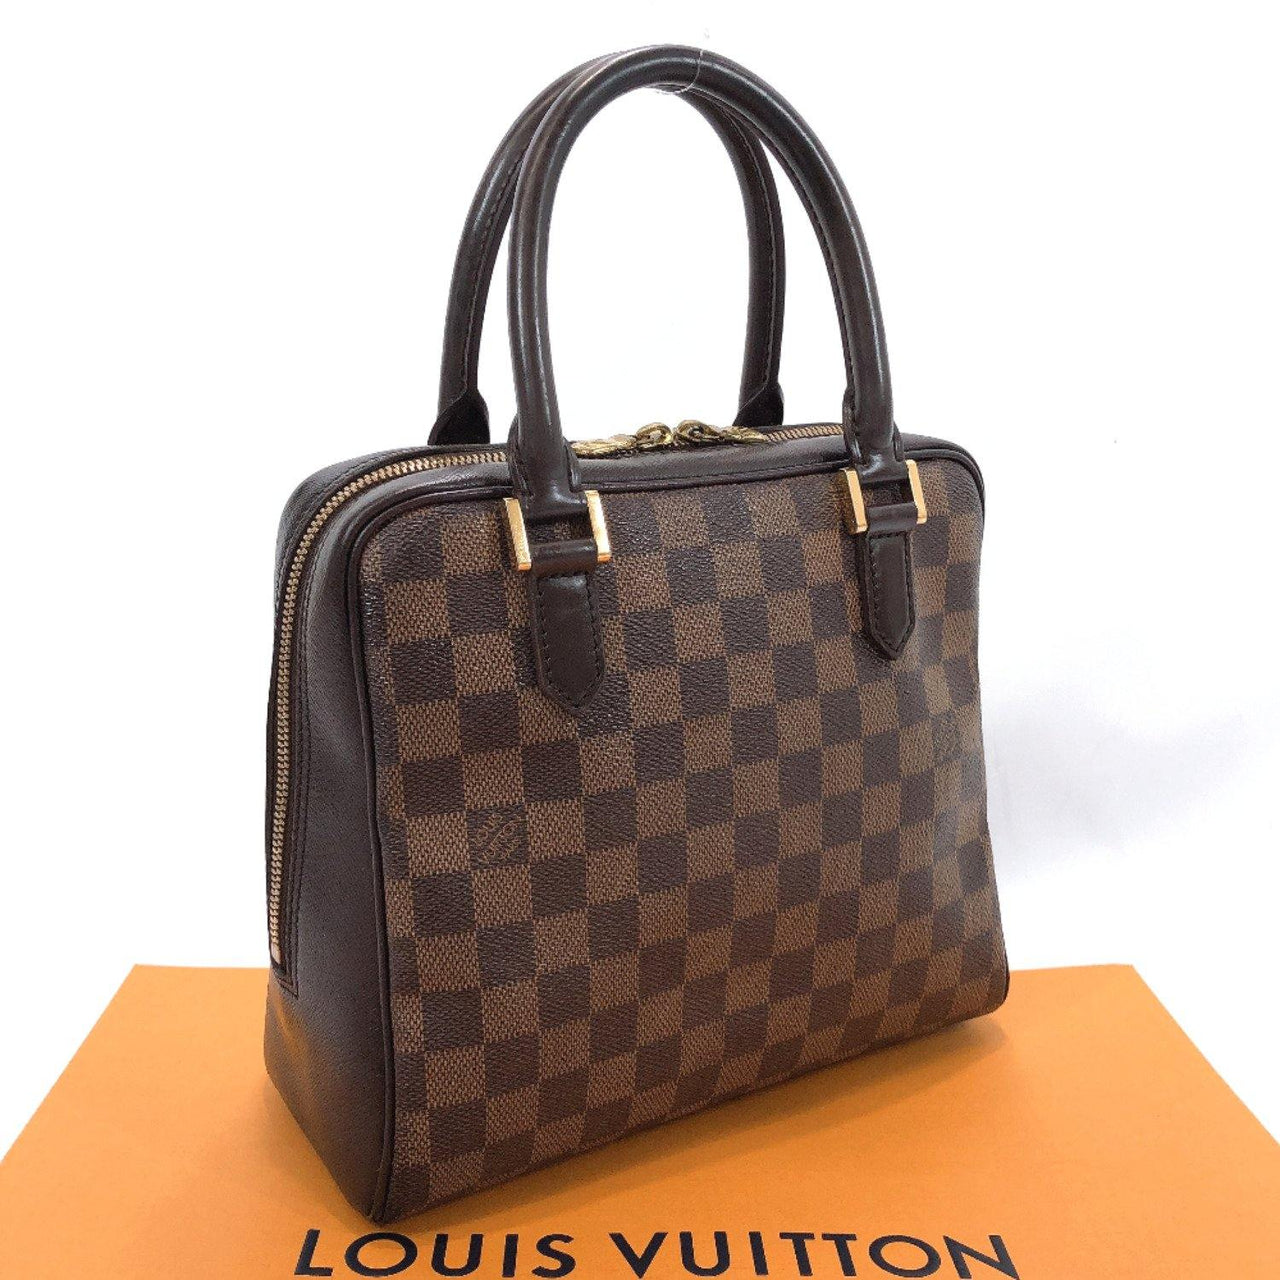 LOUIS VUITTON Handbag N51150 Brera Damier canvas/leather Brown Women Used